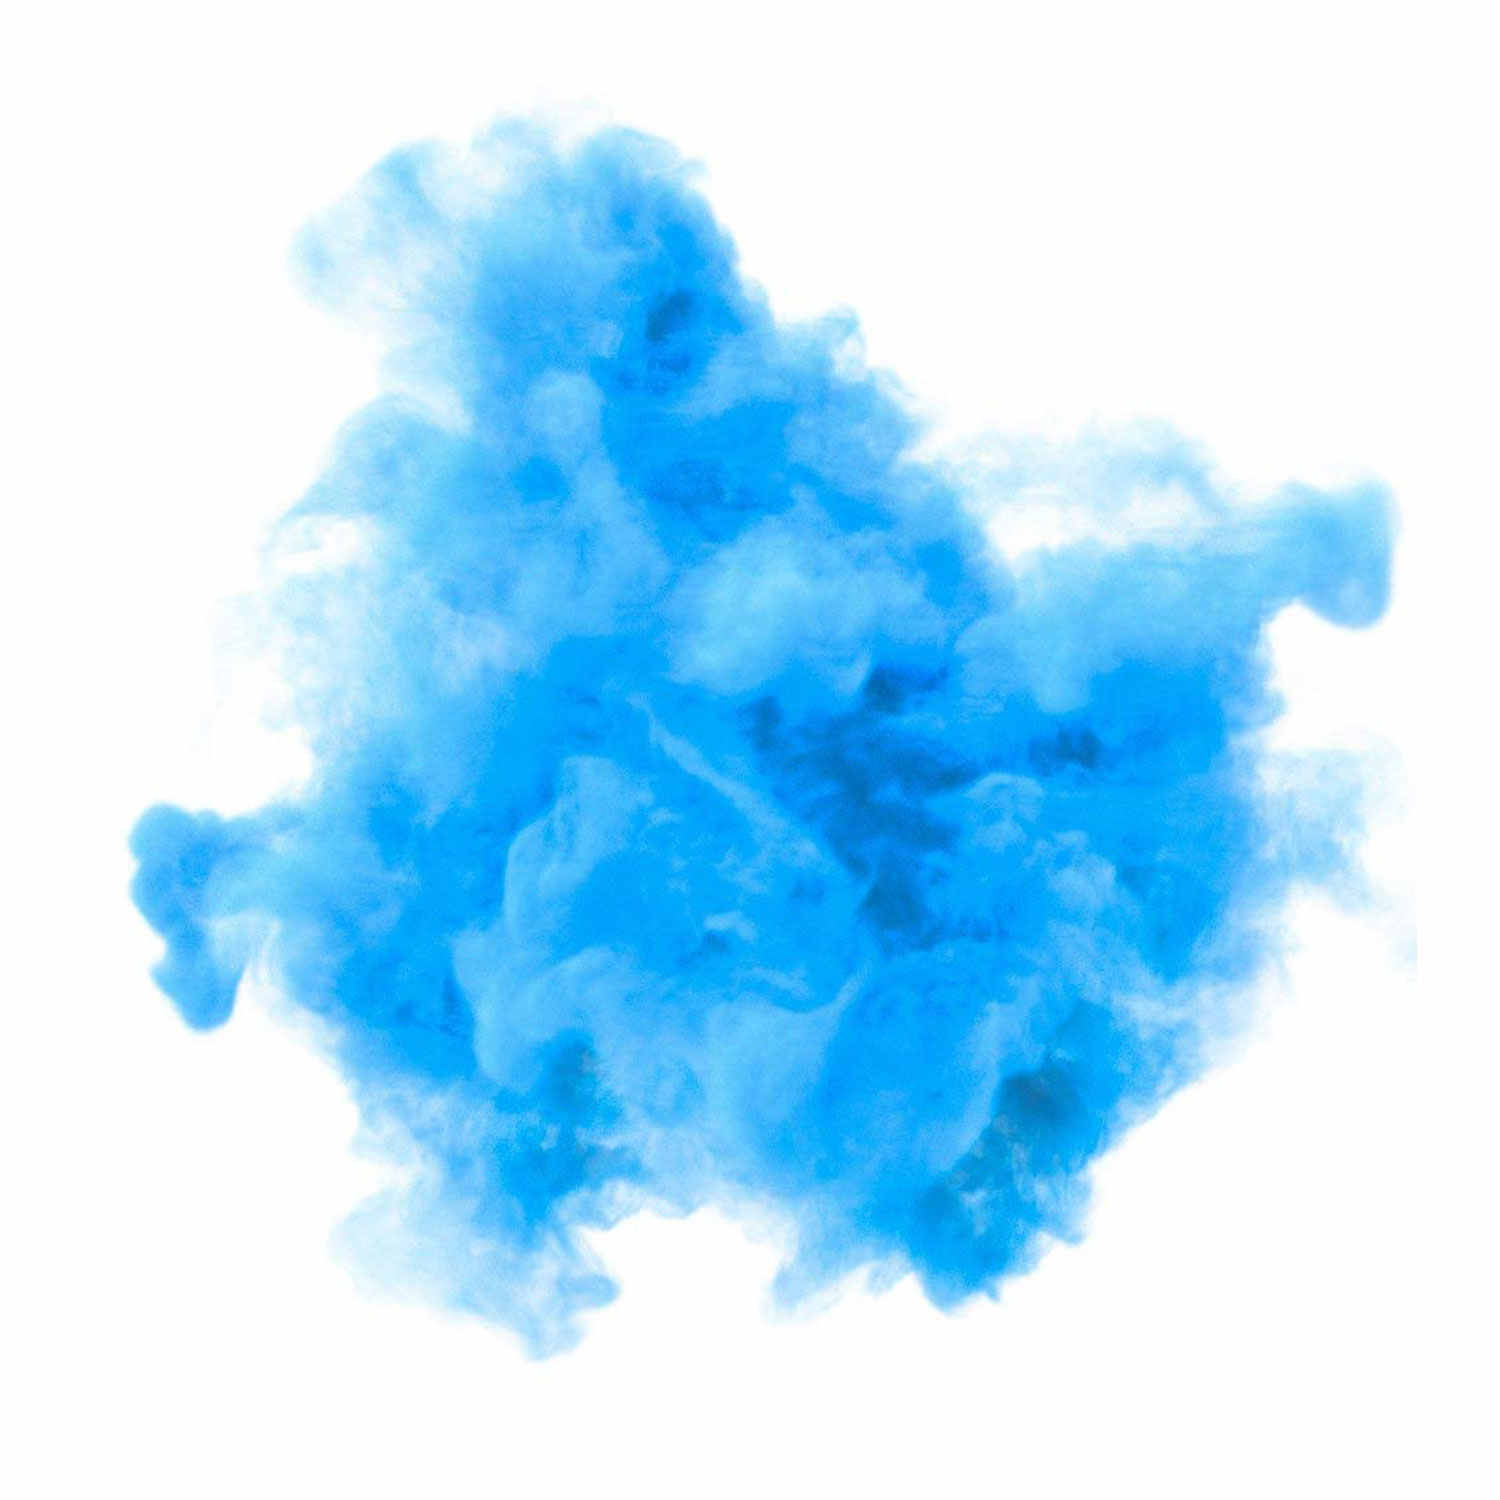 ZLJQ-Jumbo-36-Gender-Reveal-Powder-Balloon-for-Baby-Shower-Come-with-Pink-and-Blue-Powder.jpg_q50.jpg